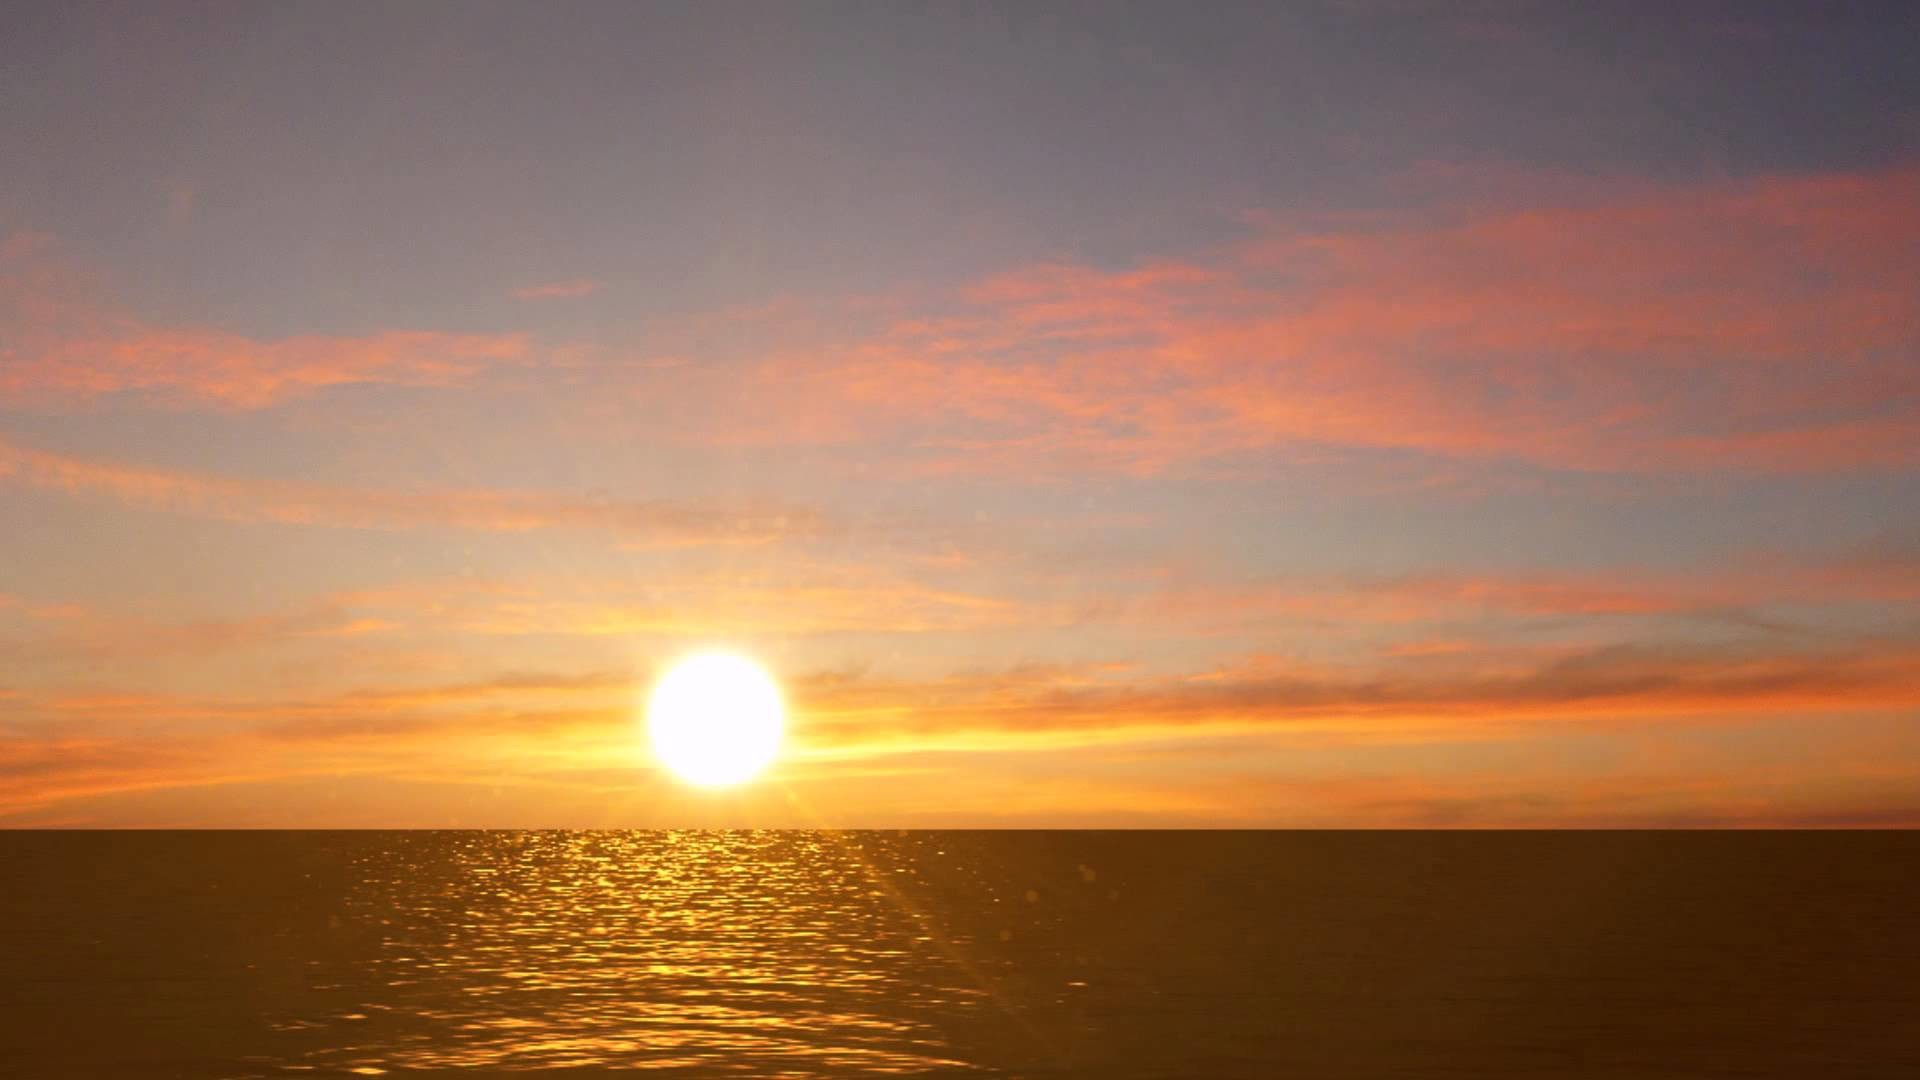 Sunrise background images wallpapertag - Hd images download ...